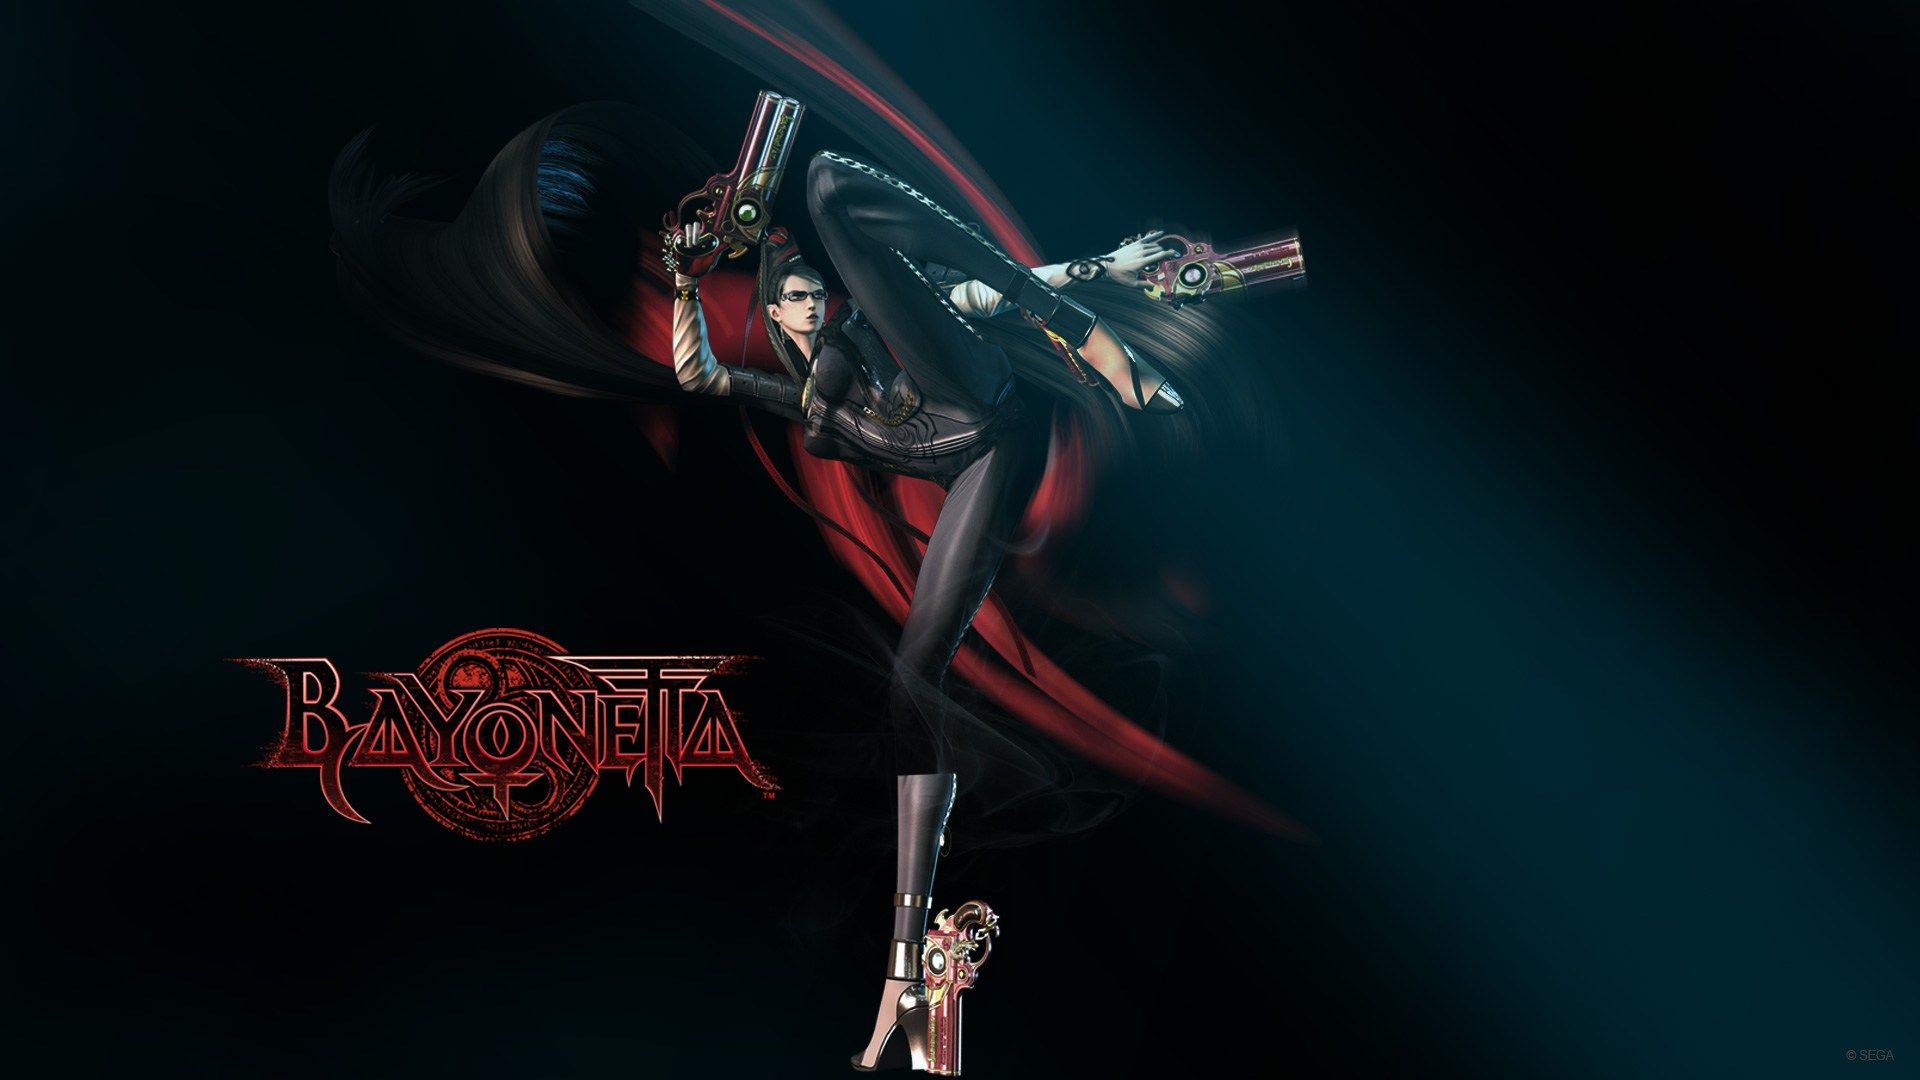 bayonetta Kicking Wallpaper